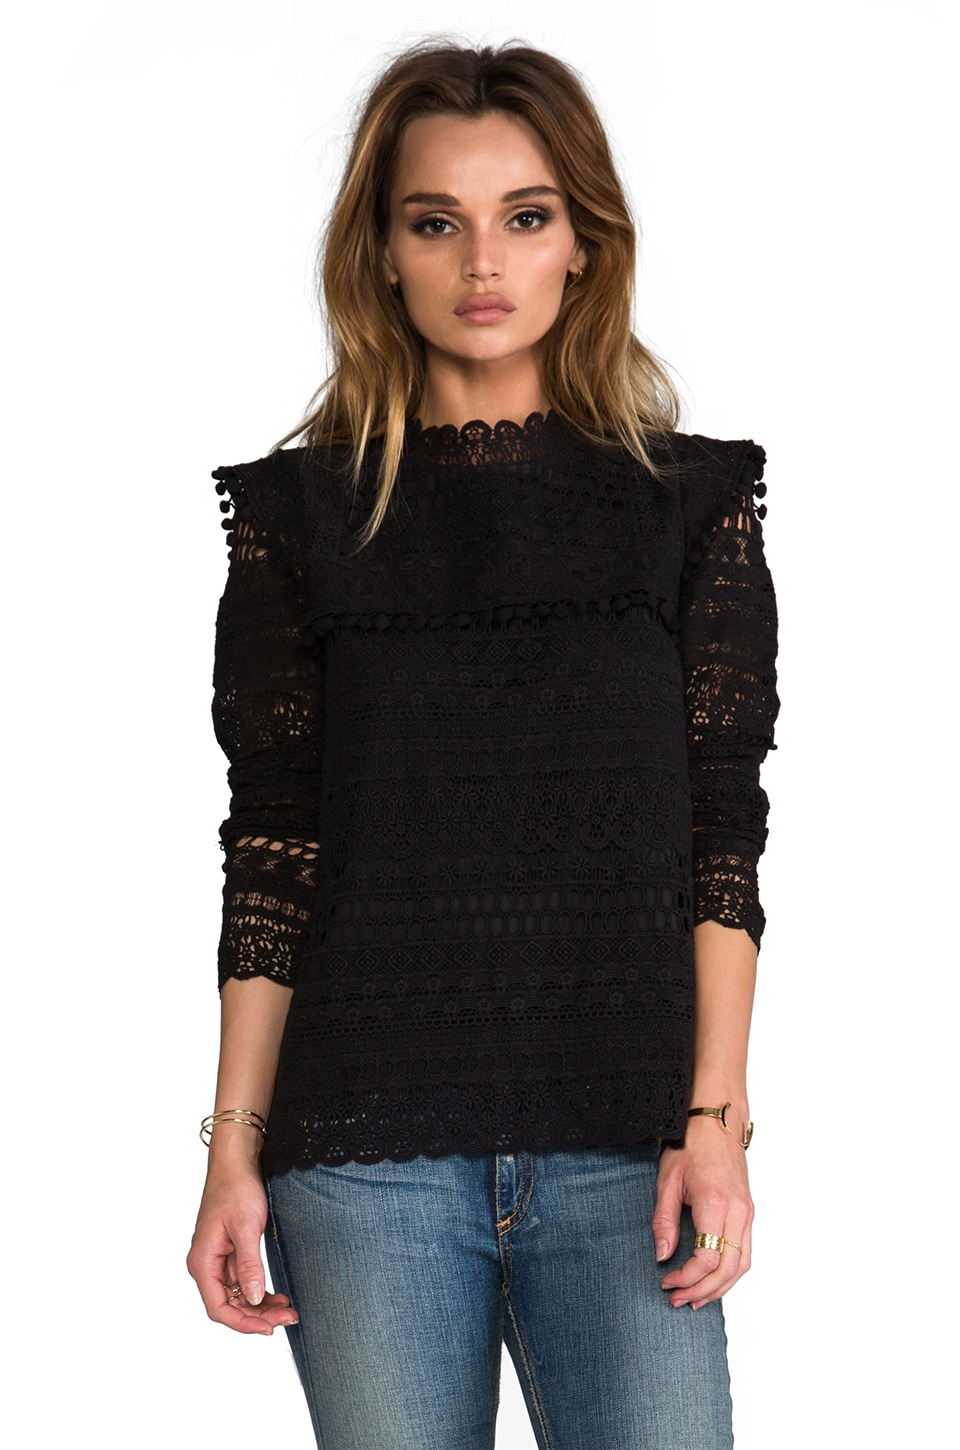 Maison Scotch Lace Long Sleeve Top in Black